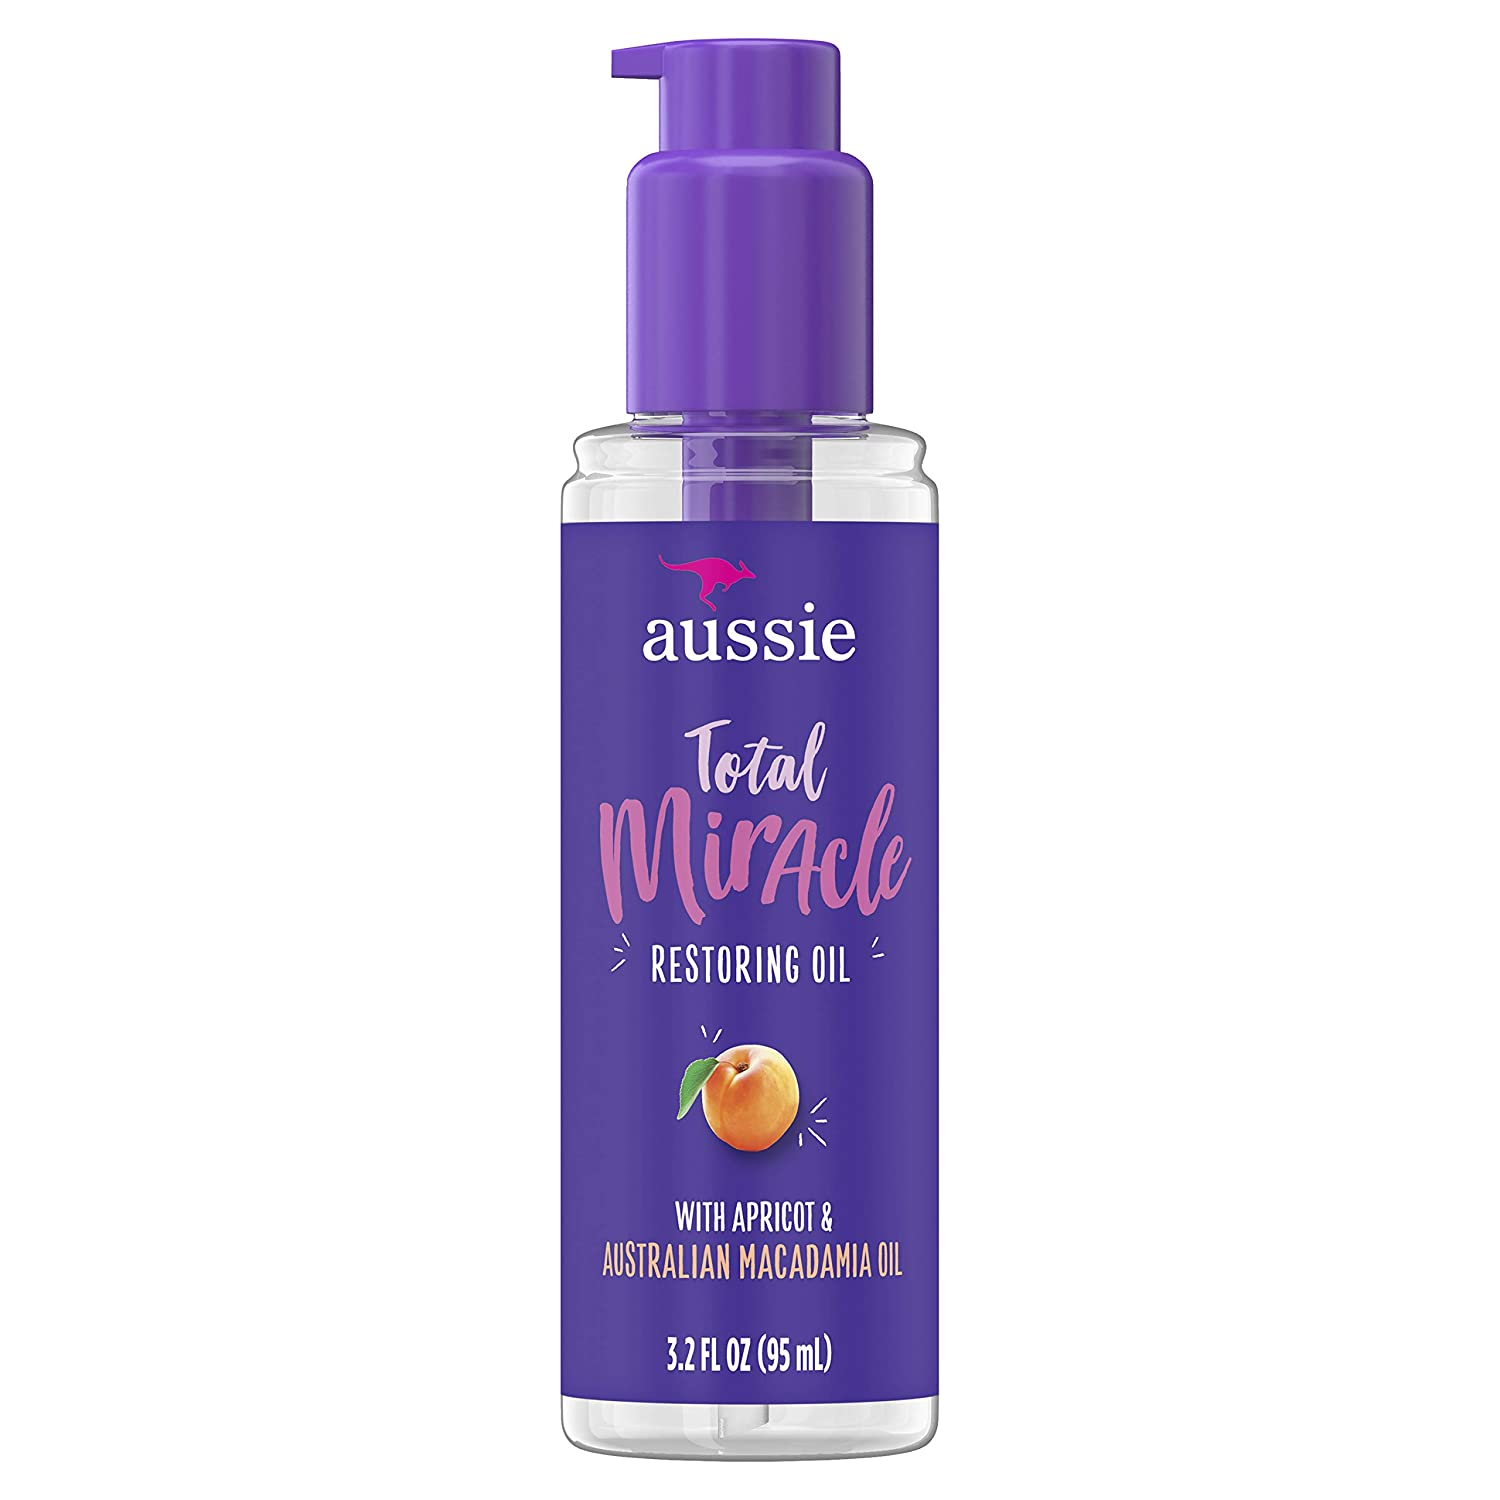 Aussie Total Miracle Restoring Oil 3.2 Ounce Apricot (95ml)